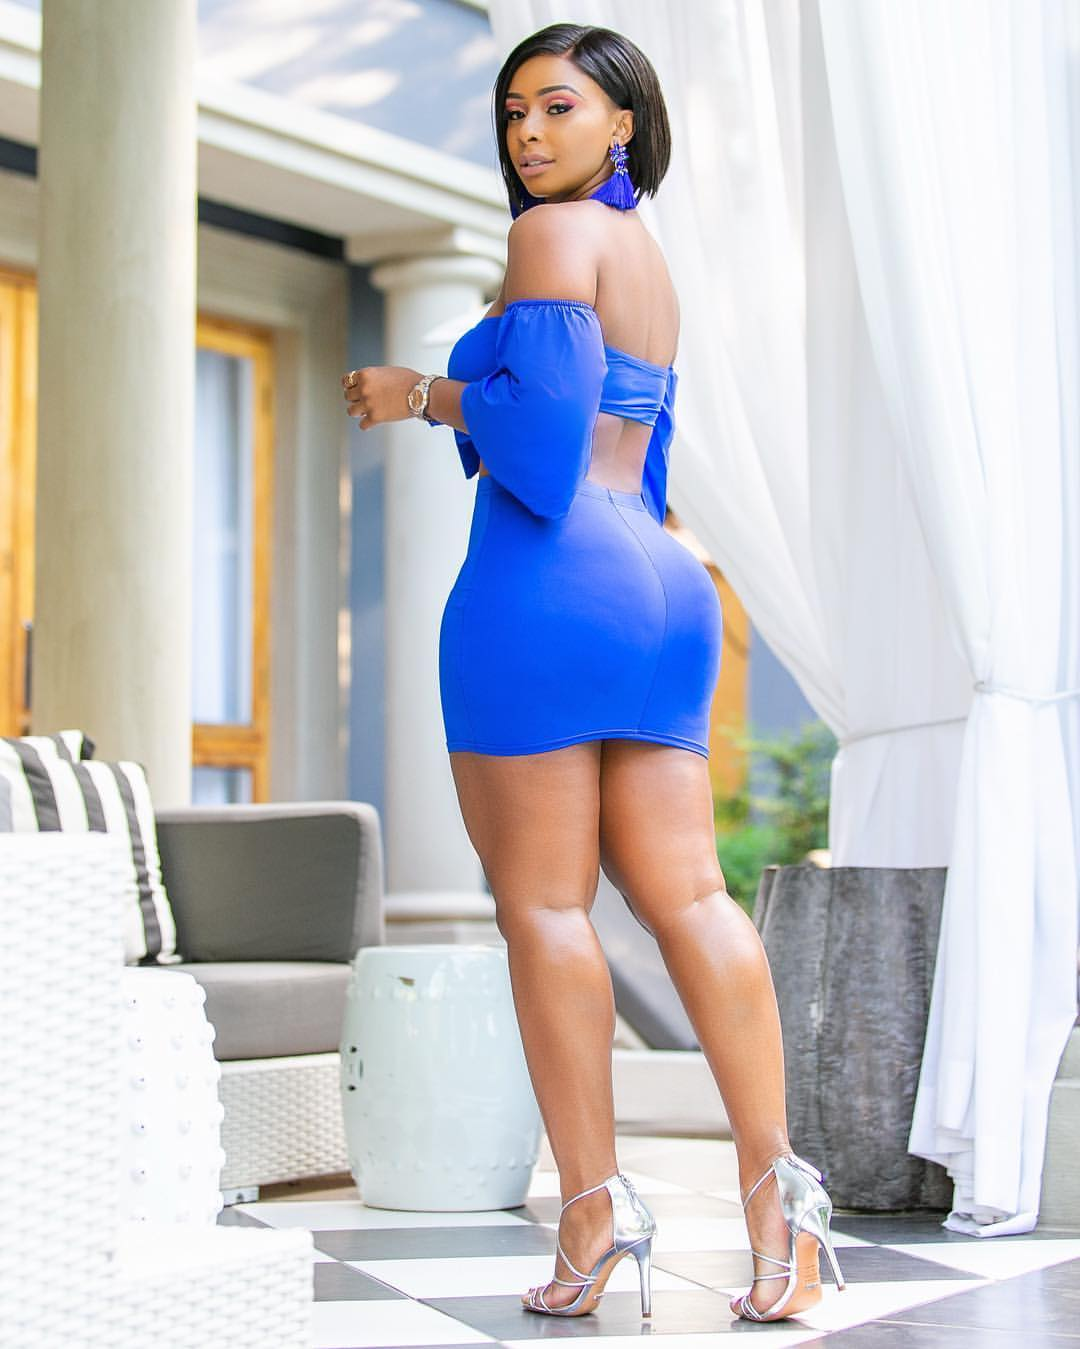 Boity Shows Off Her Massive Behind